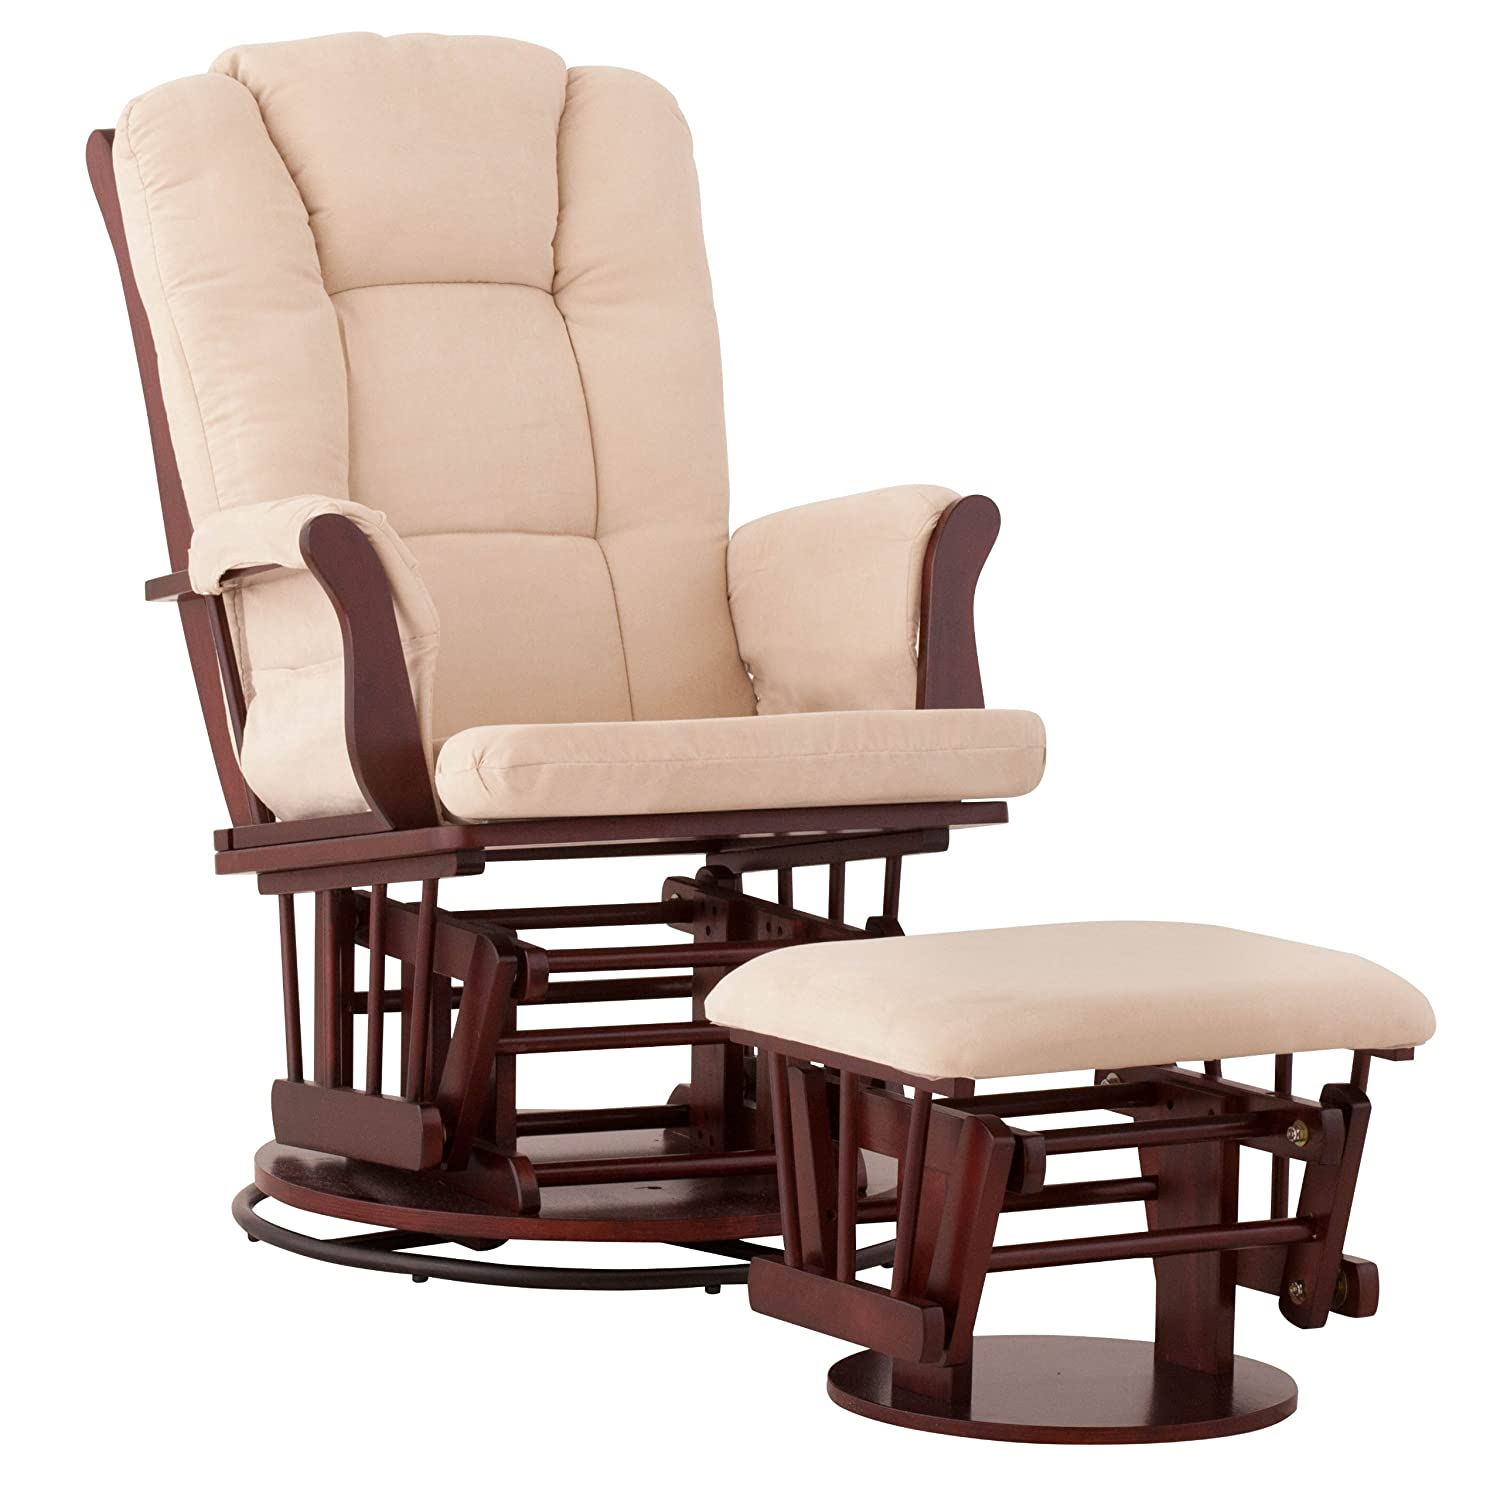 ... Craft Tuscany Glider Rocking Chair And Ottoman  Search Results